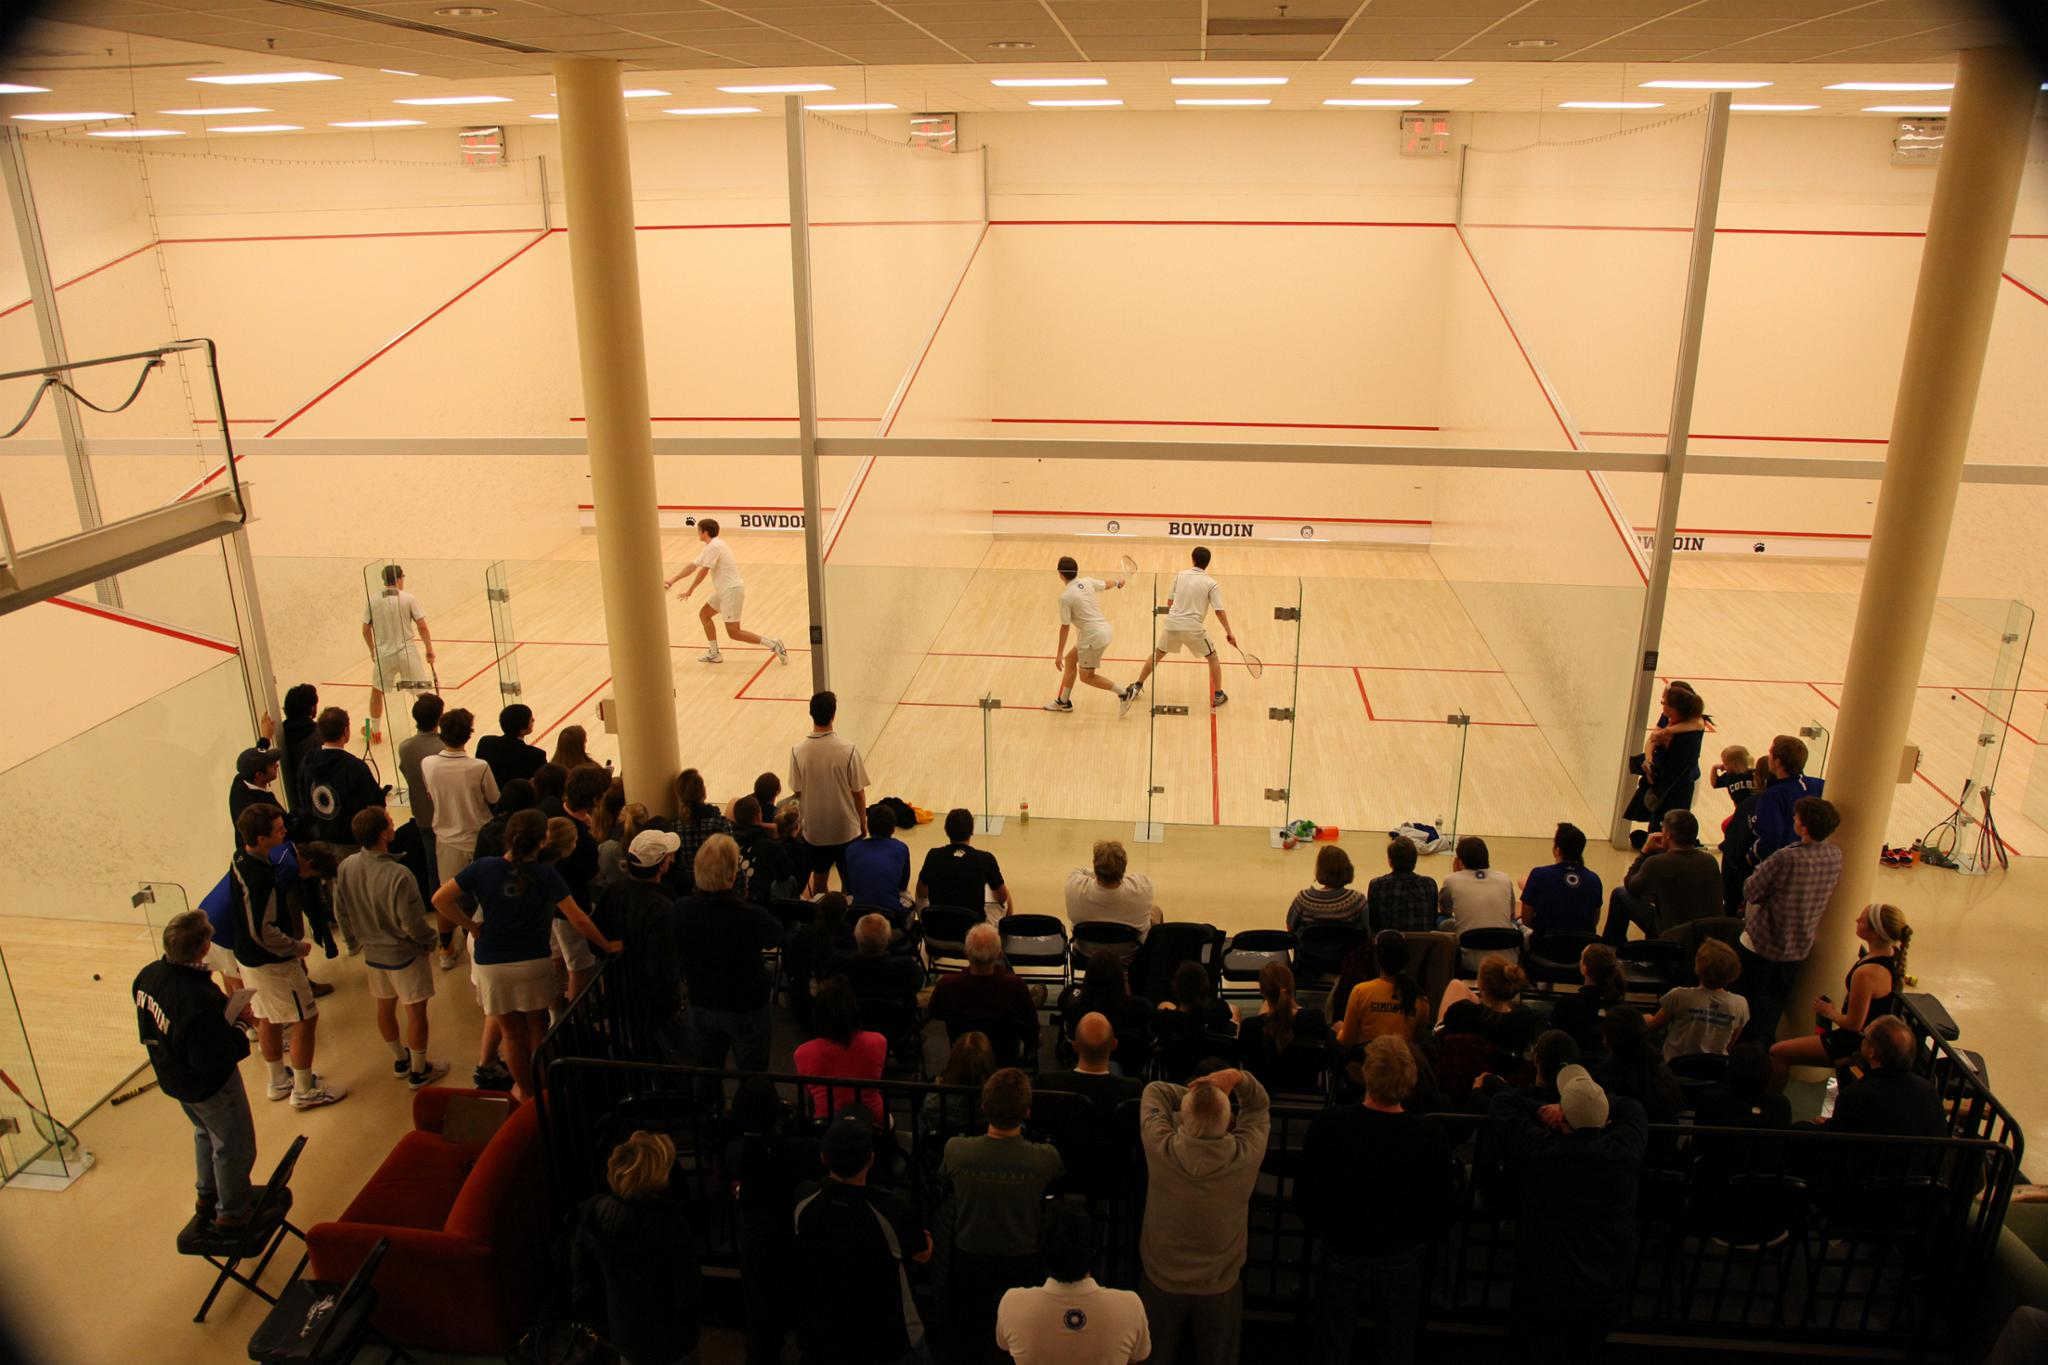 Experience bowdoin college in virtual reality lubin family squash center sciox Image collections